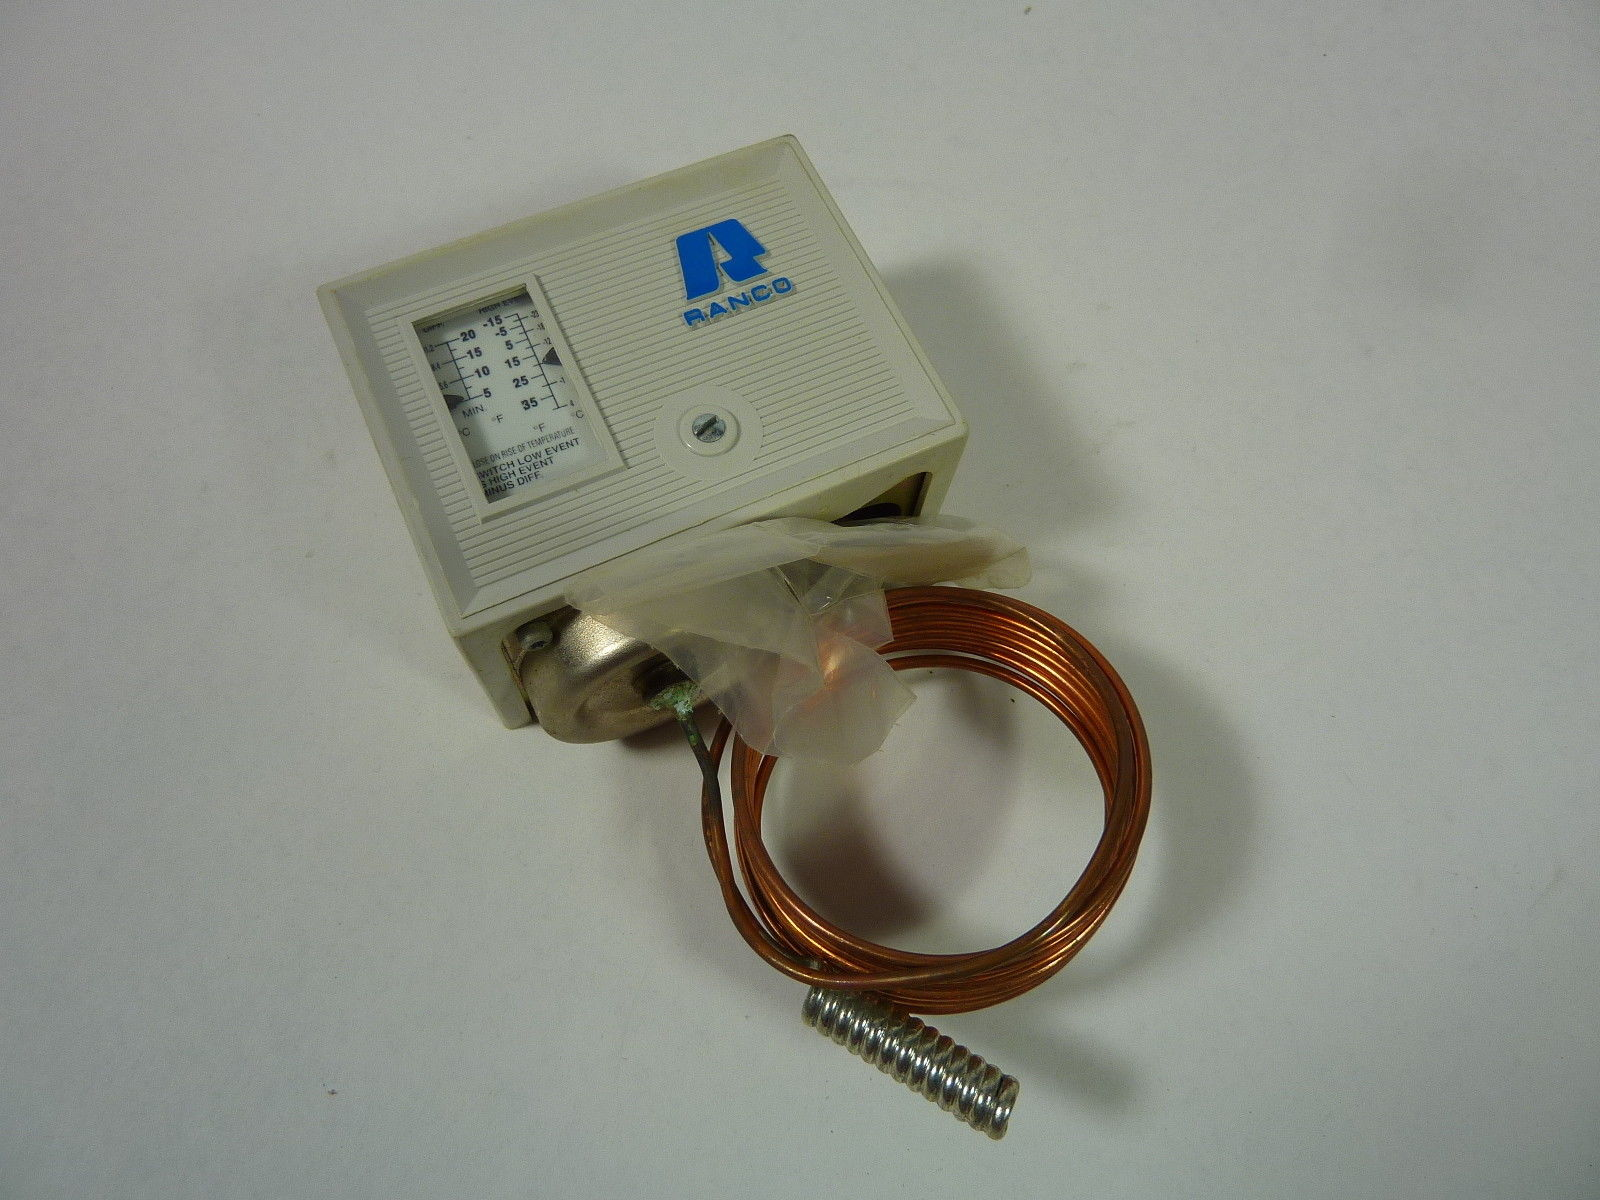 ranco fridge thermostat wiring diagram 3 phase transformer oil g1 library